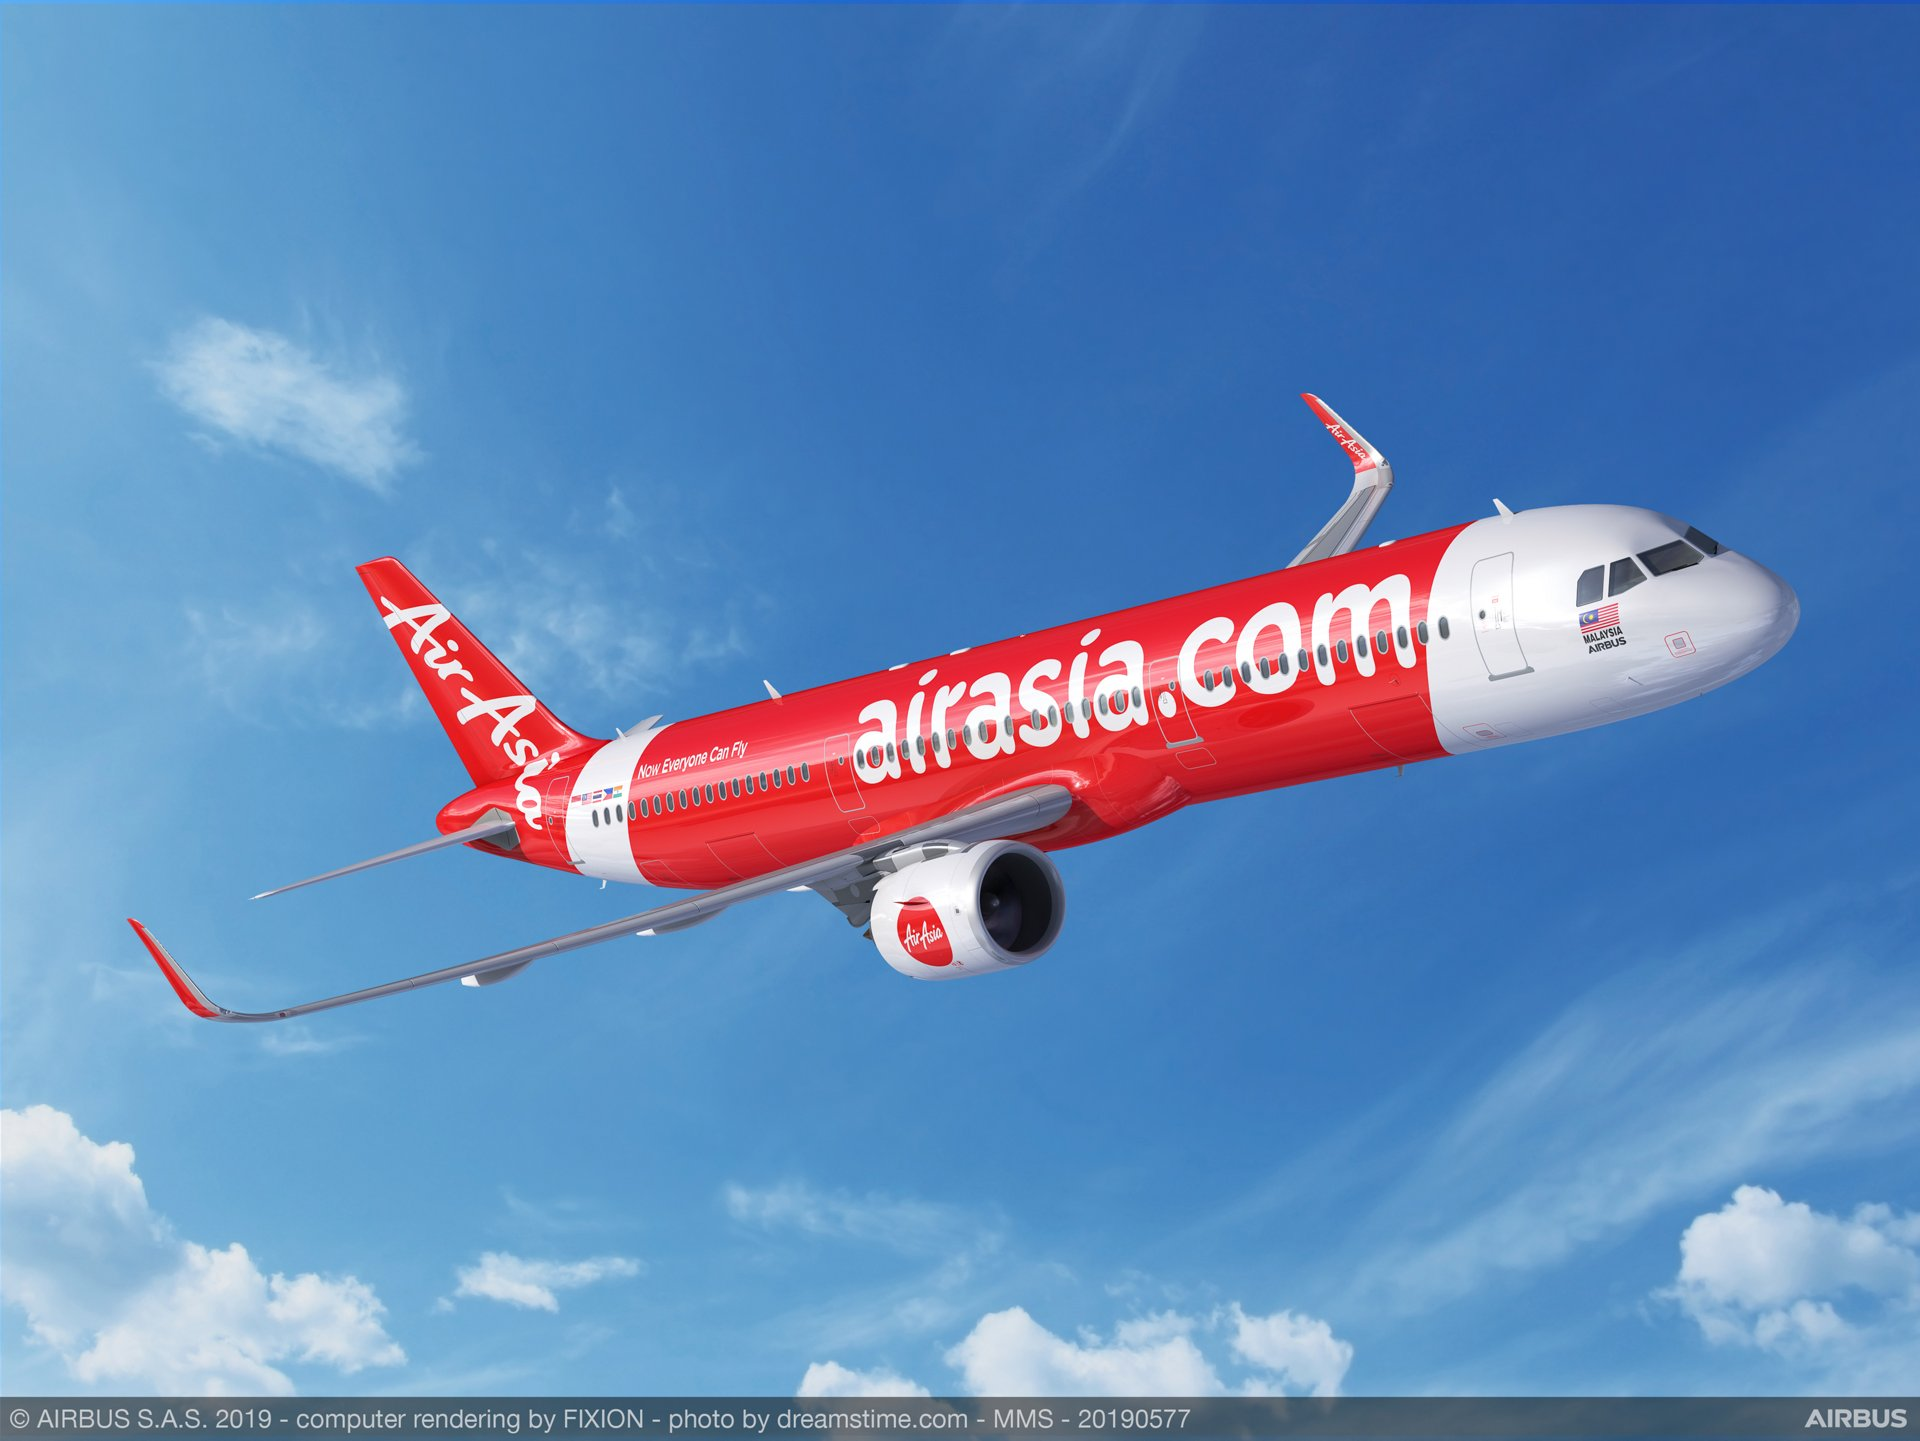 AirAsia's conversion of 253 A320neo orders to the longer-fuselage A321neo version will enable this airline to offer higher capacity in response to ongoing strong demand across its network